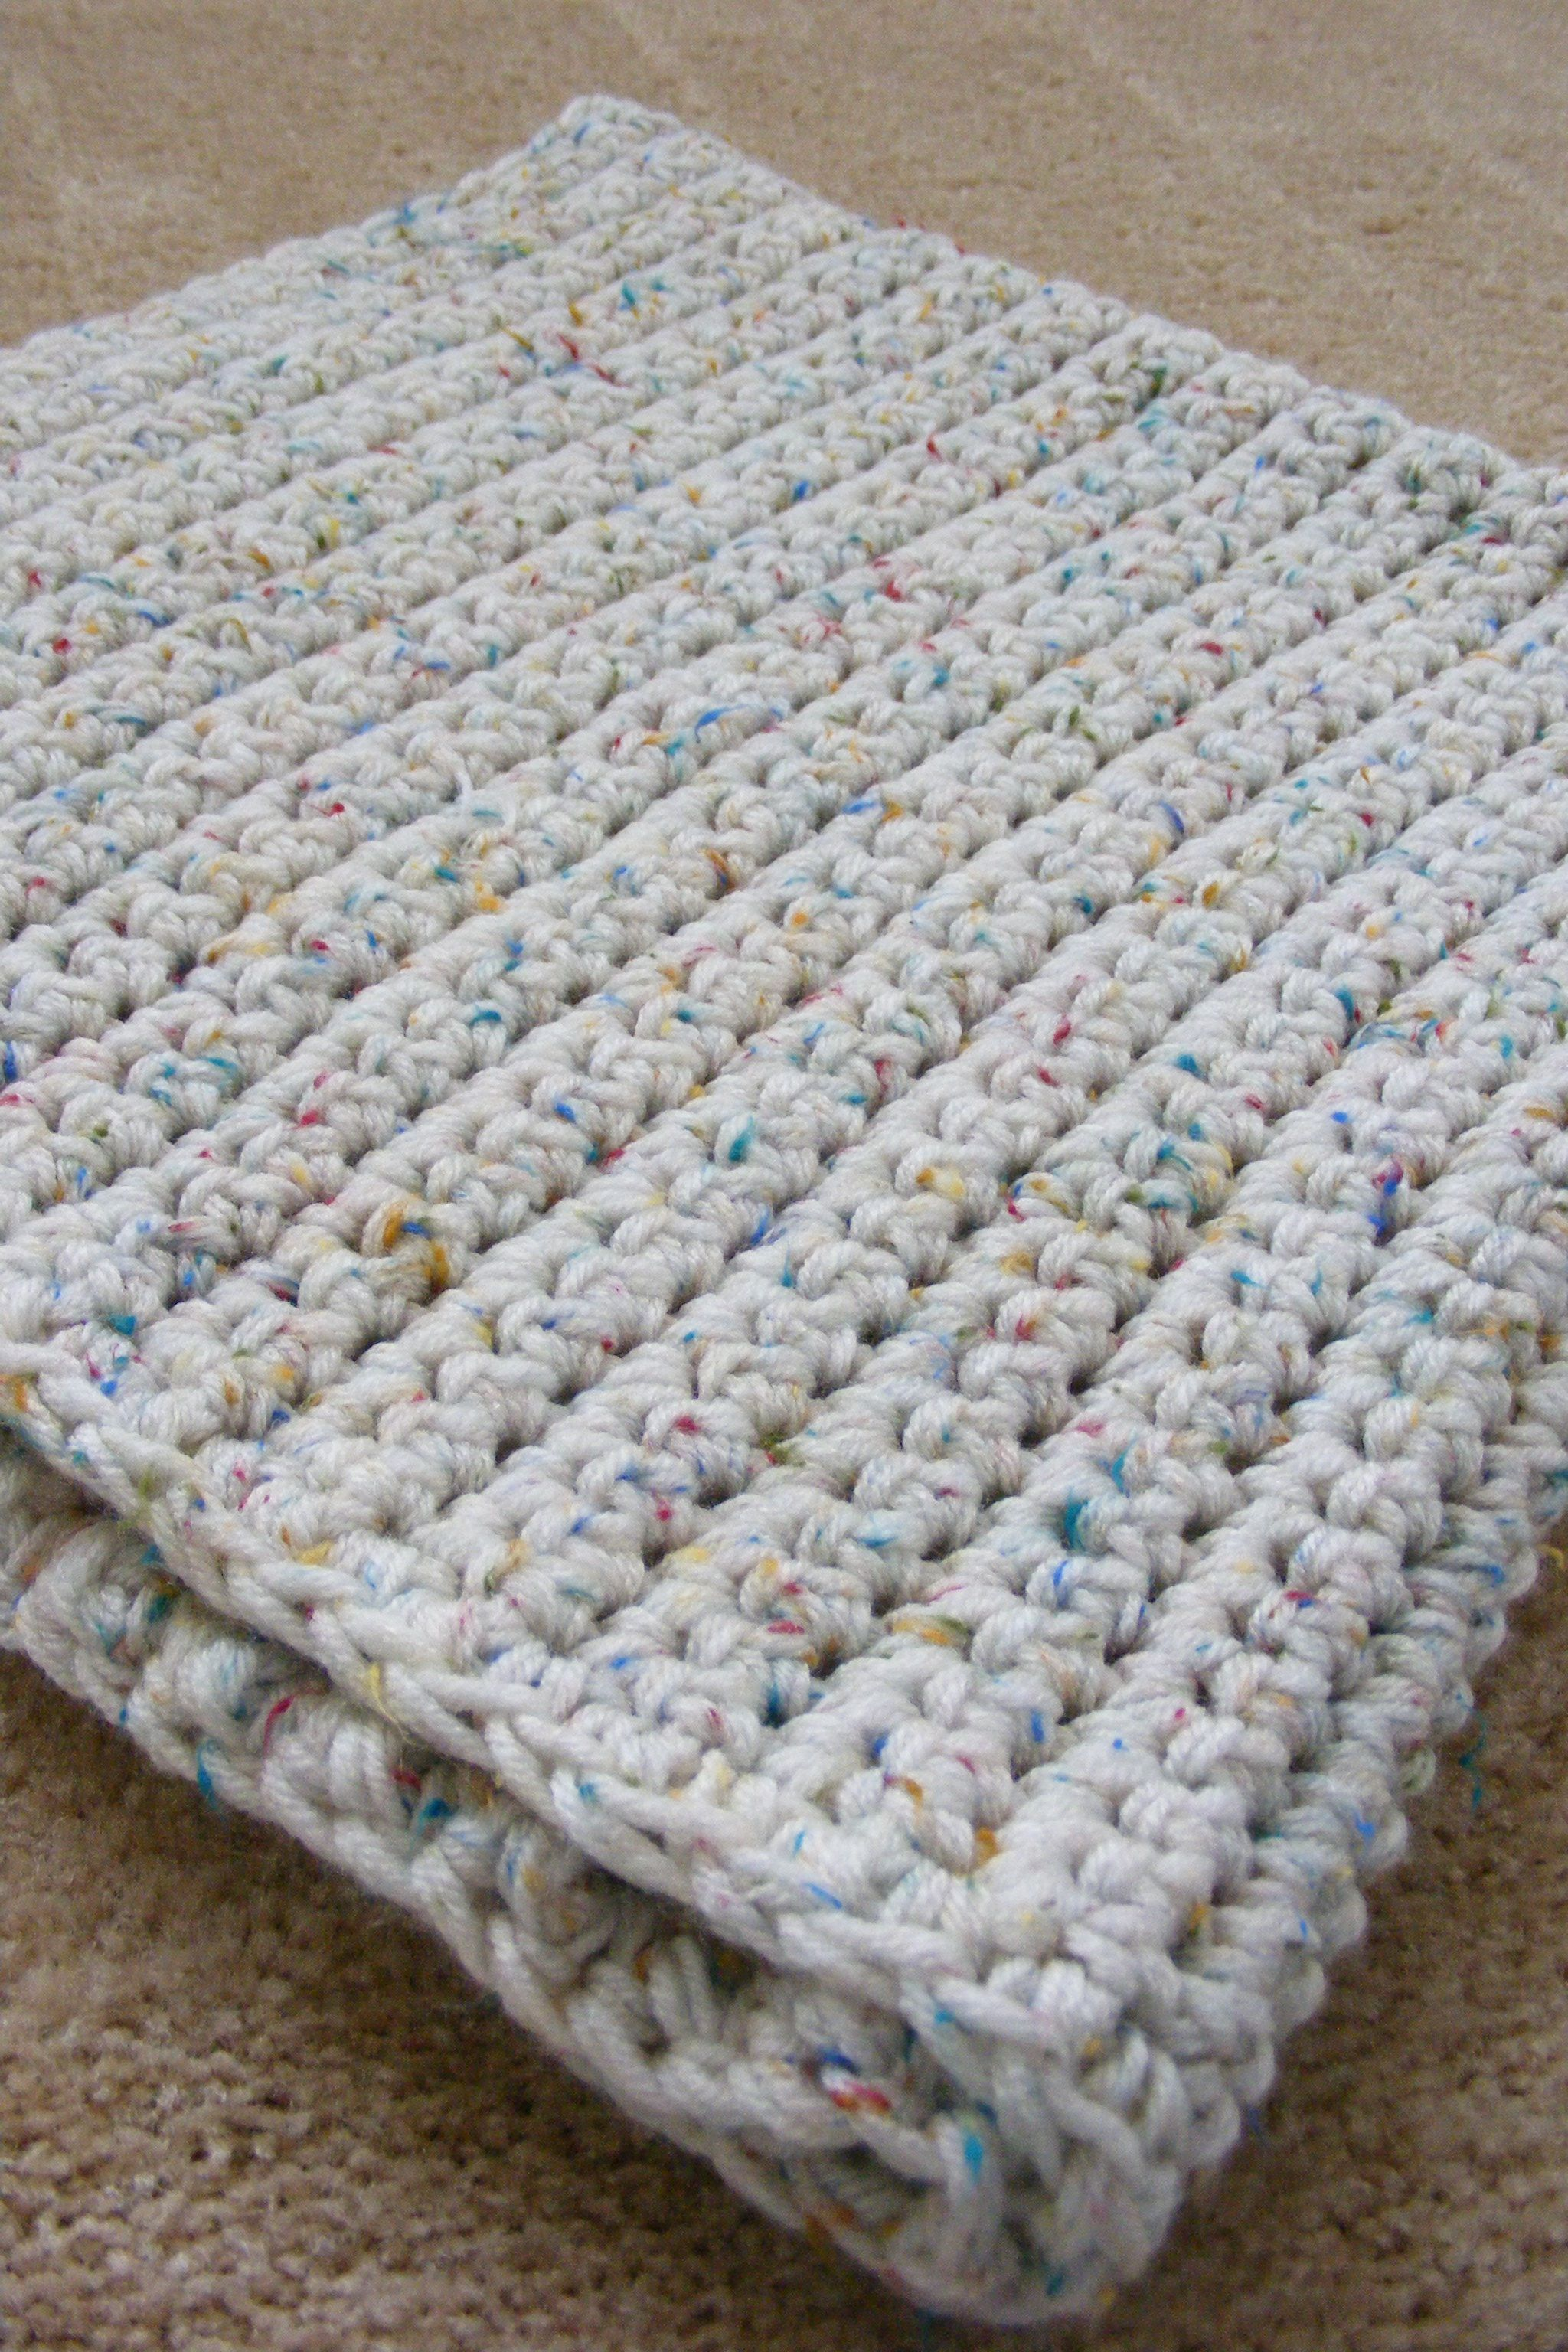 Crocheted Baby Blankets Single Crochet Baby Blanket Pattern Pink Blanket Baby Blanket